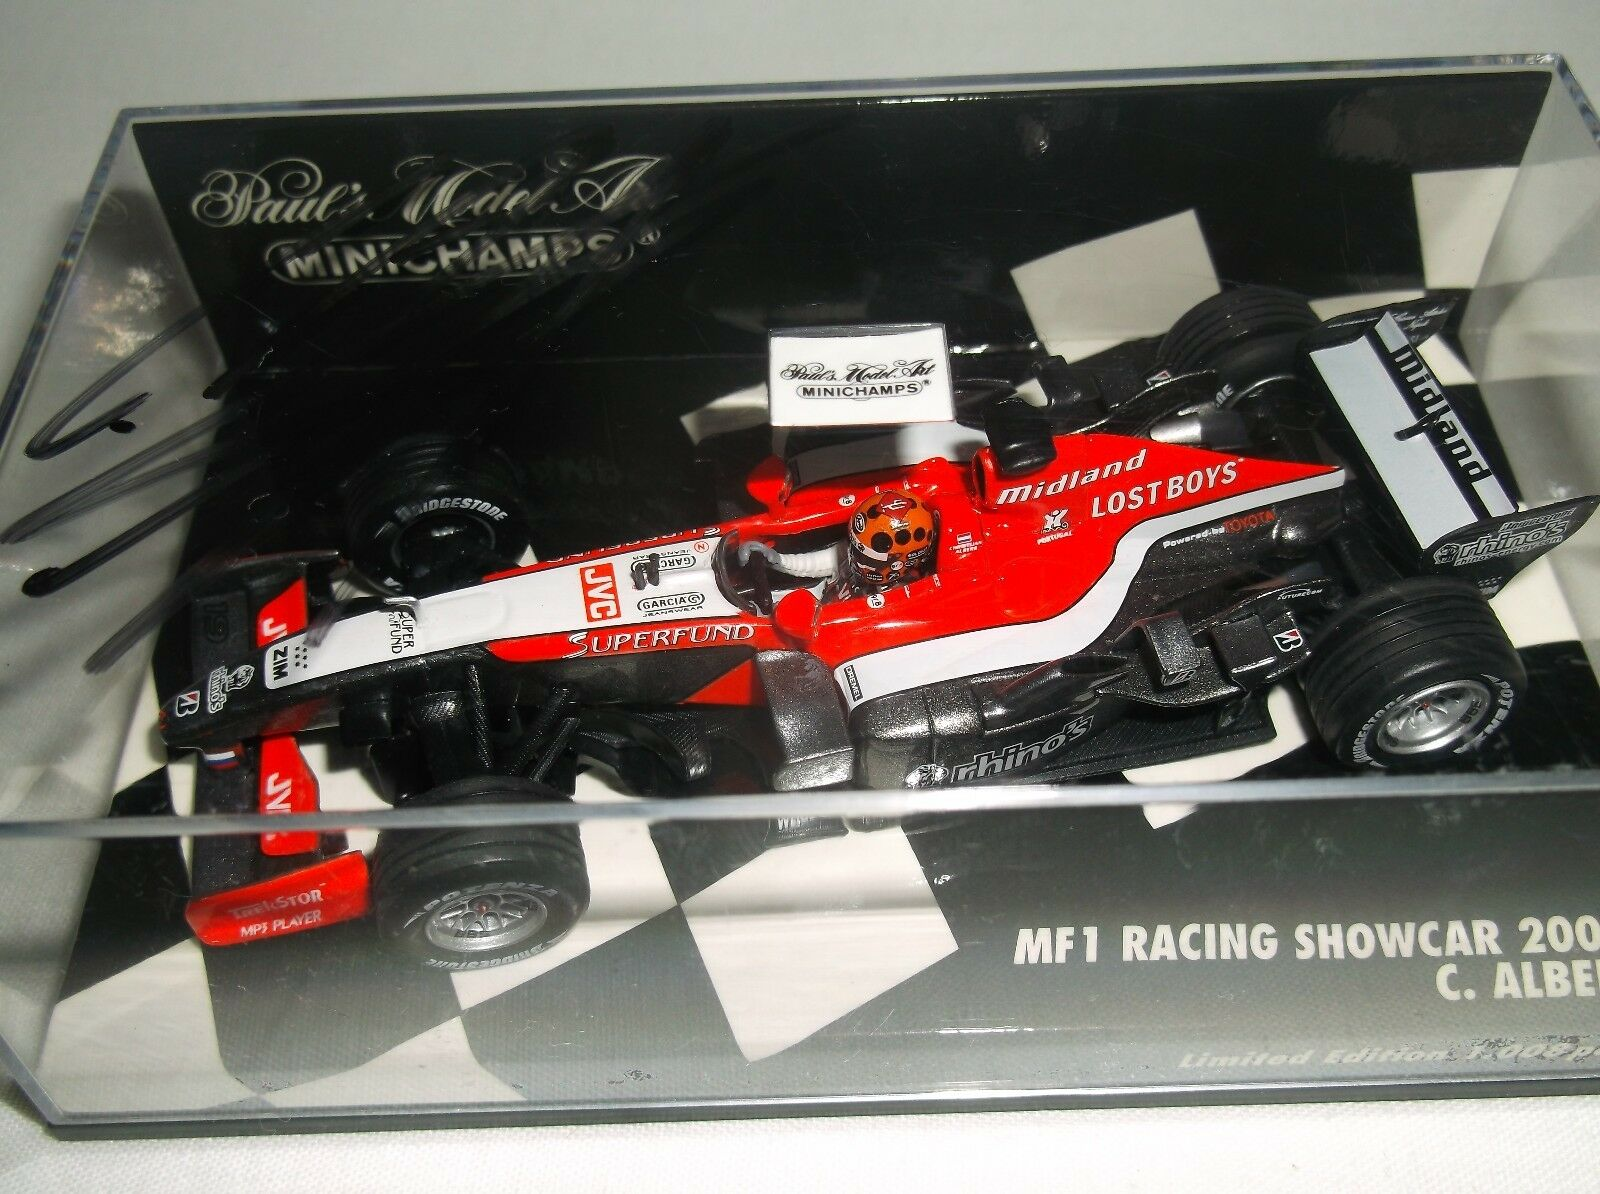 MINICHAMPS 1 43 Midland MF1 Racing Showcar 2006 C. ALBERS - SIGNED